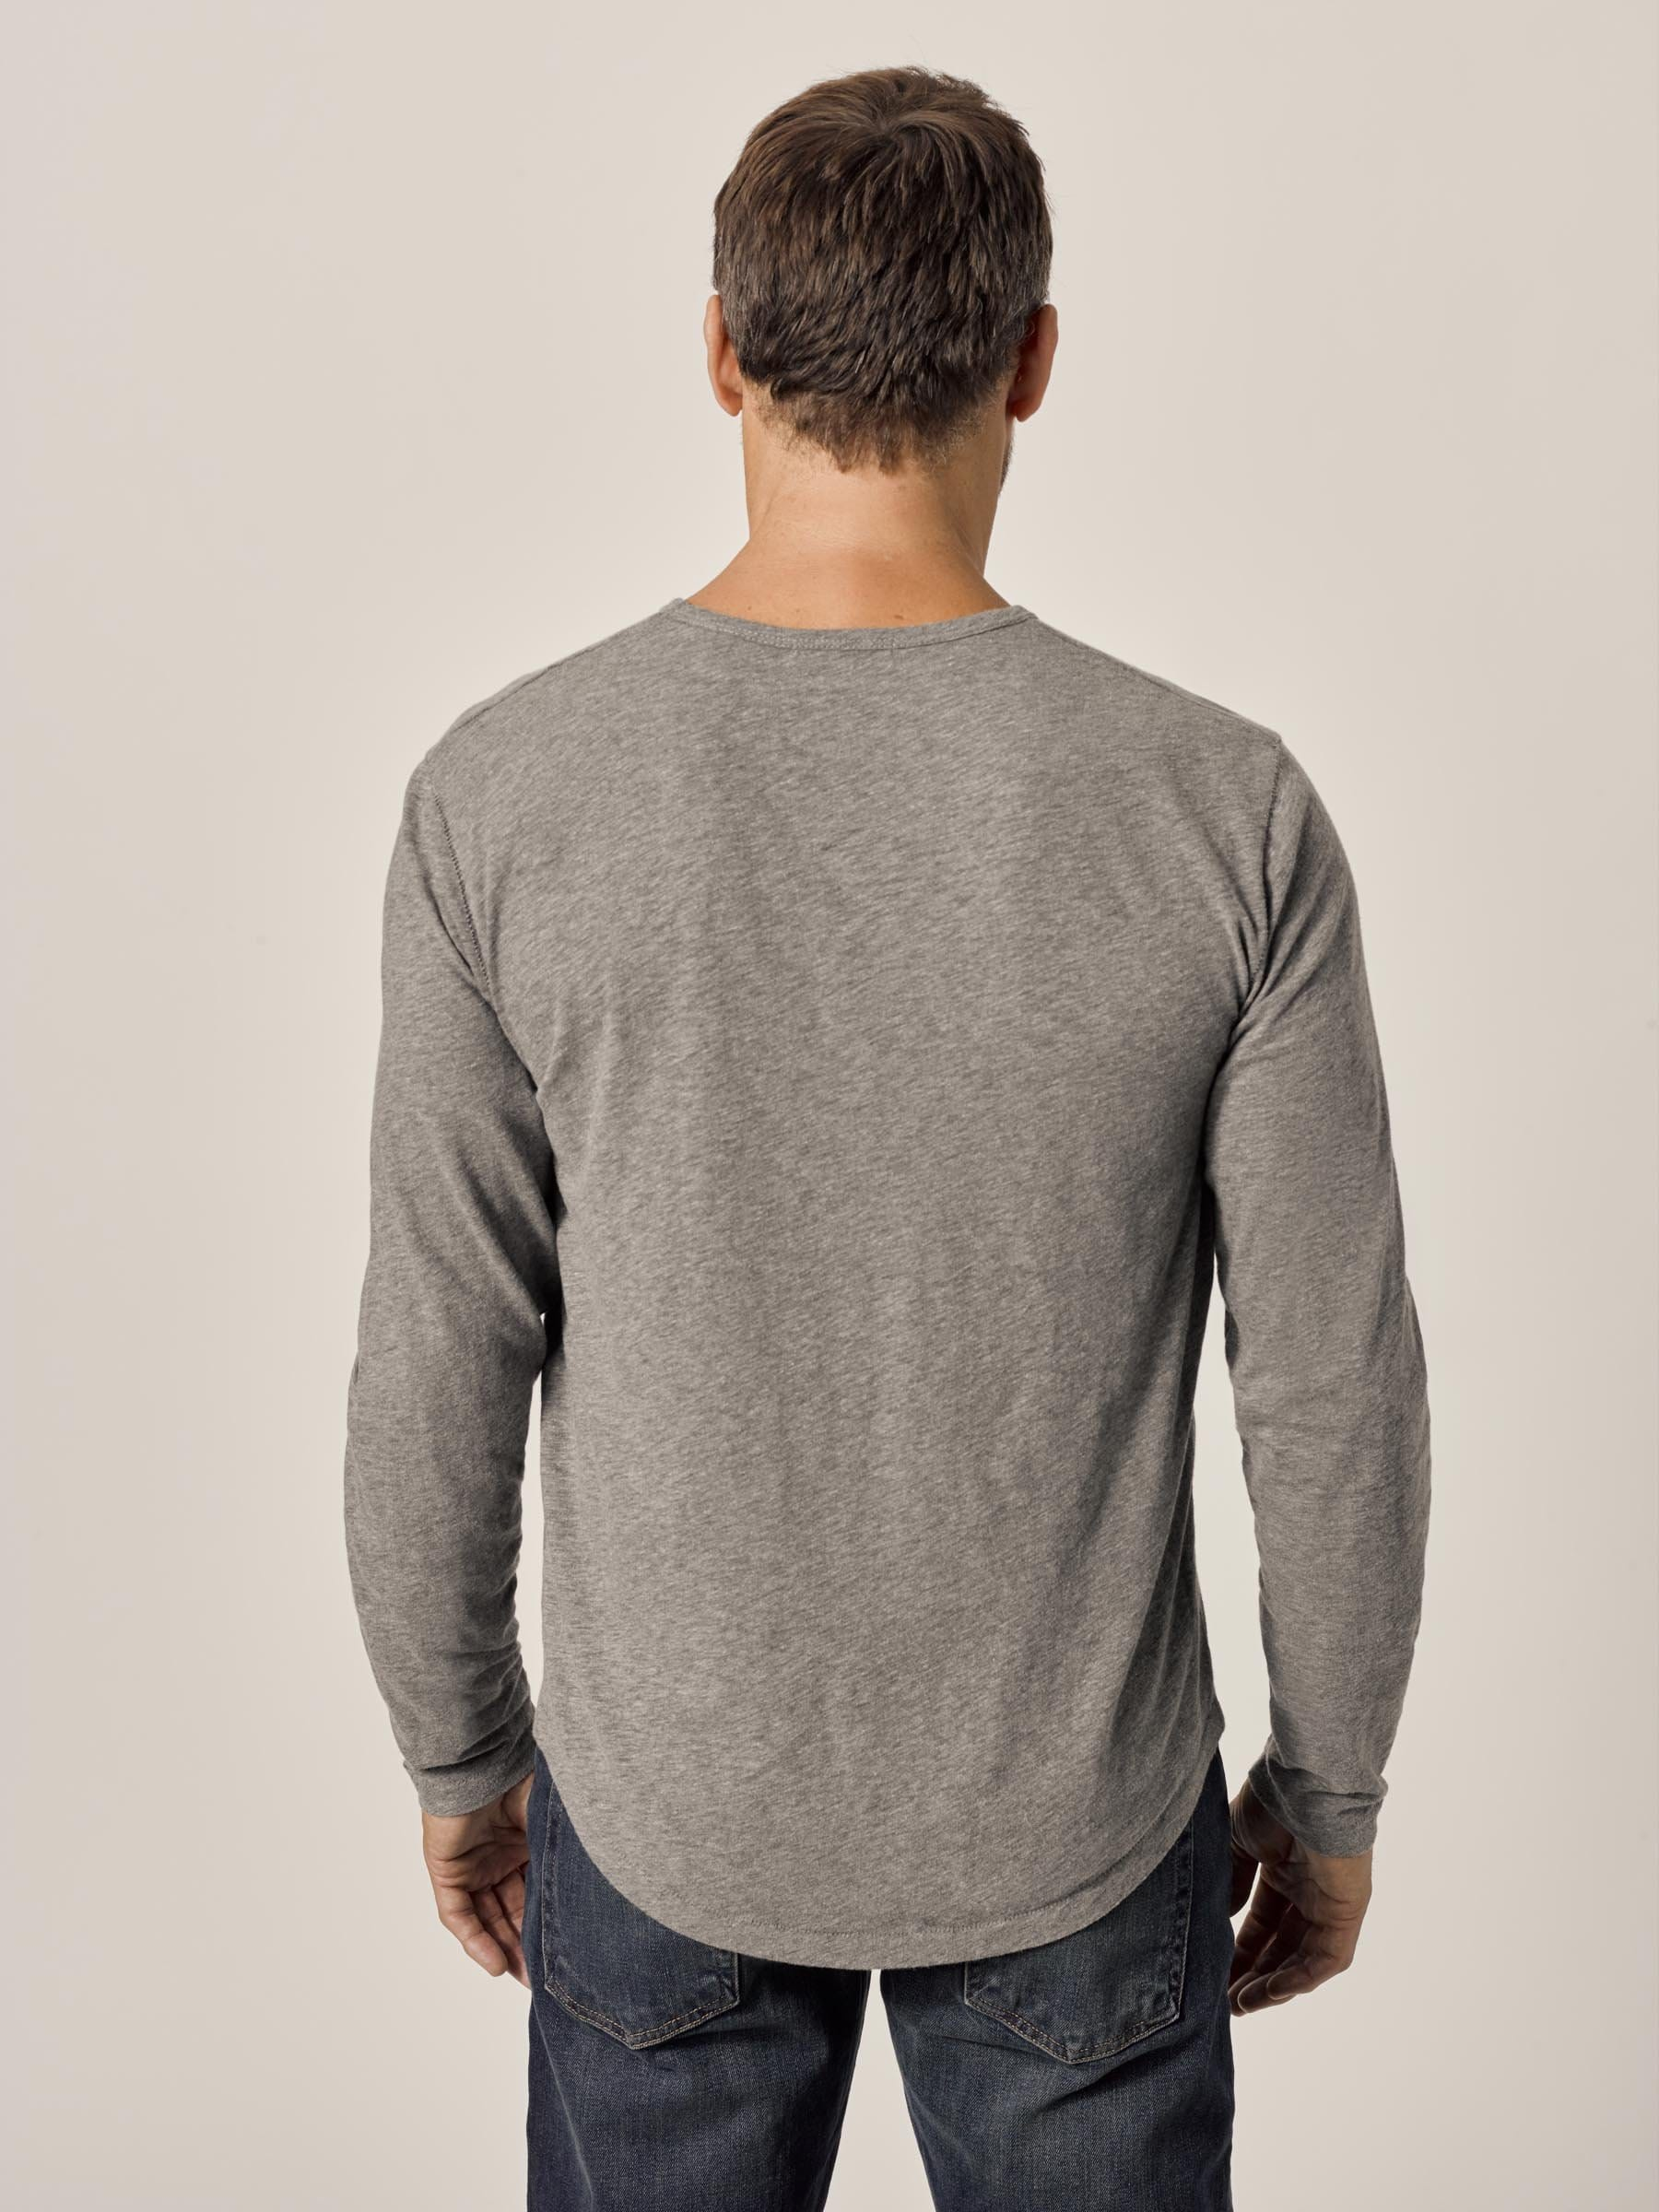 Buck Mason - Heather Grey Long Sleeve Vintage Tri-Blend Tee